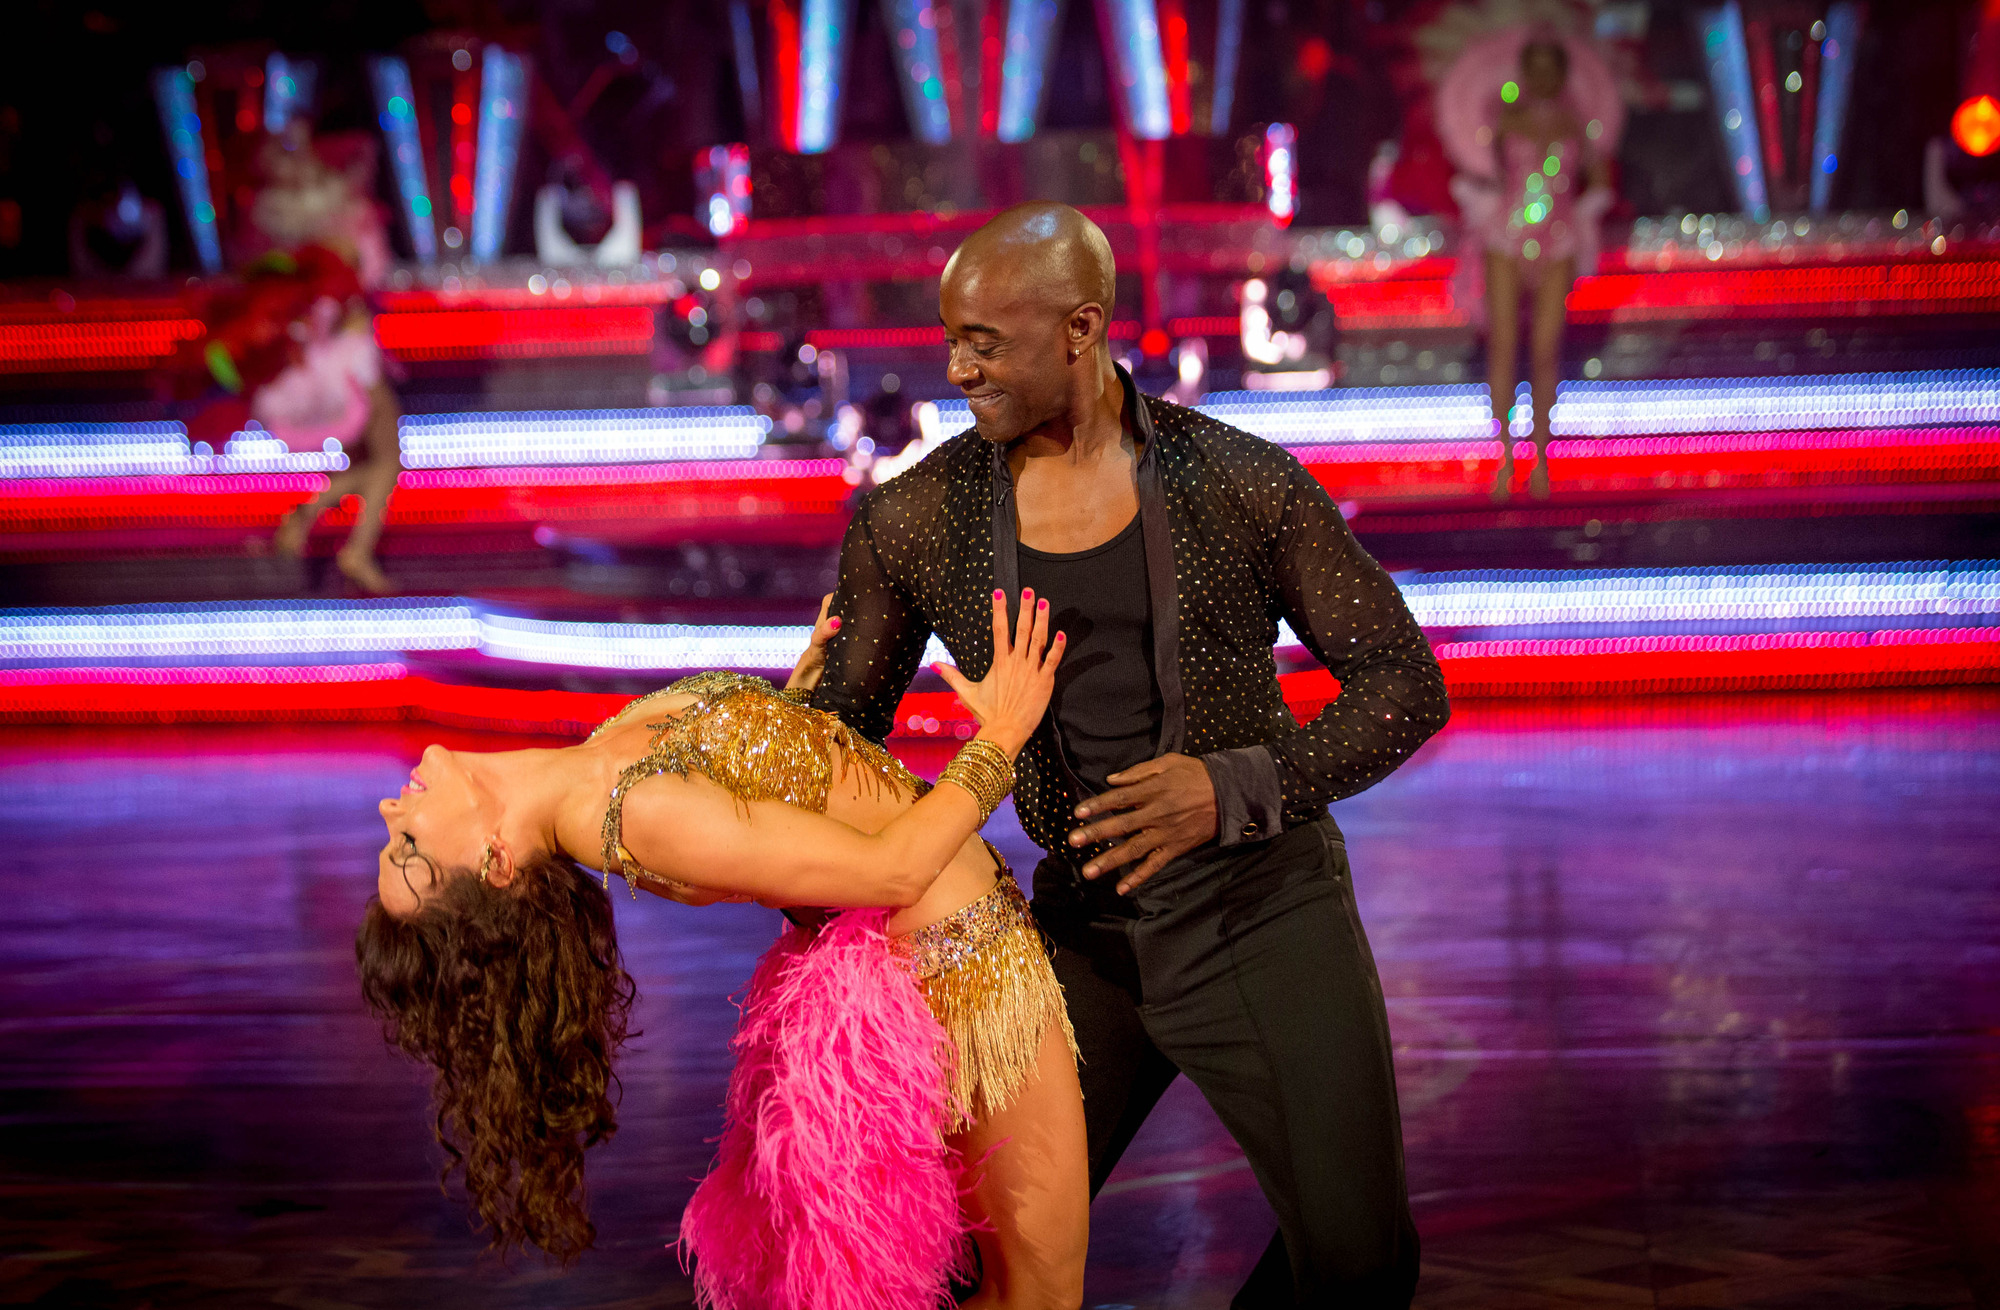 Patrick Robinson overcomes wardrobe malfunction to deliver 'best ever' Strictly samba